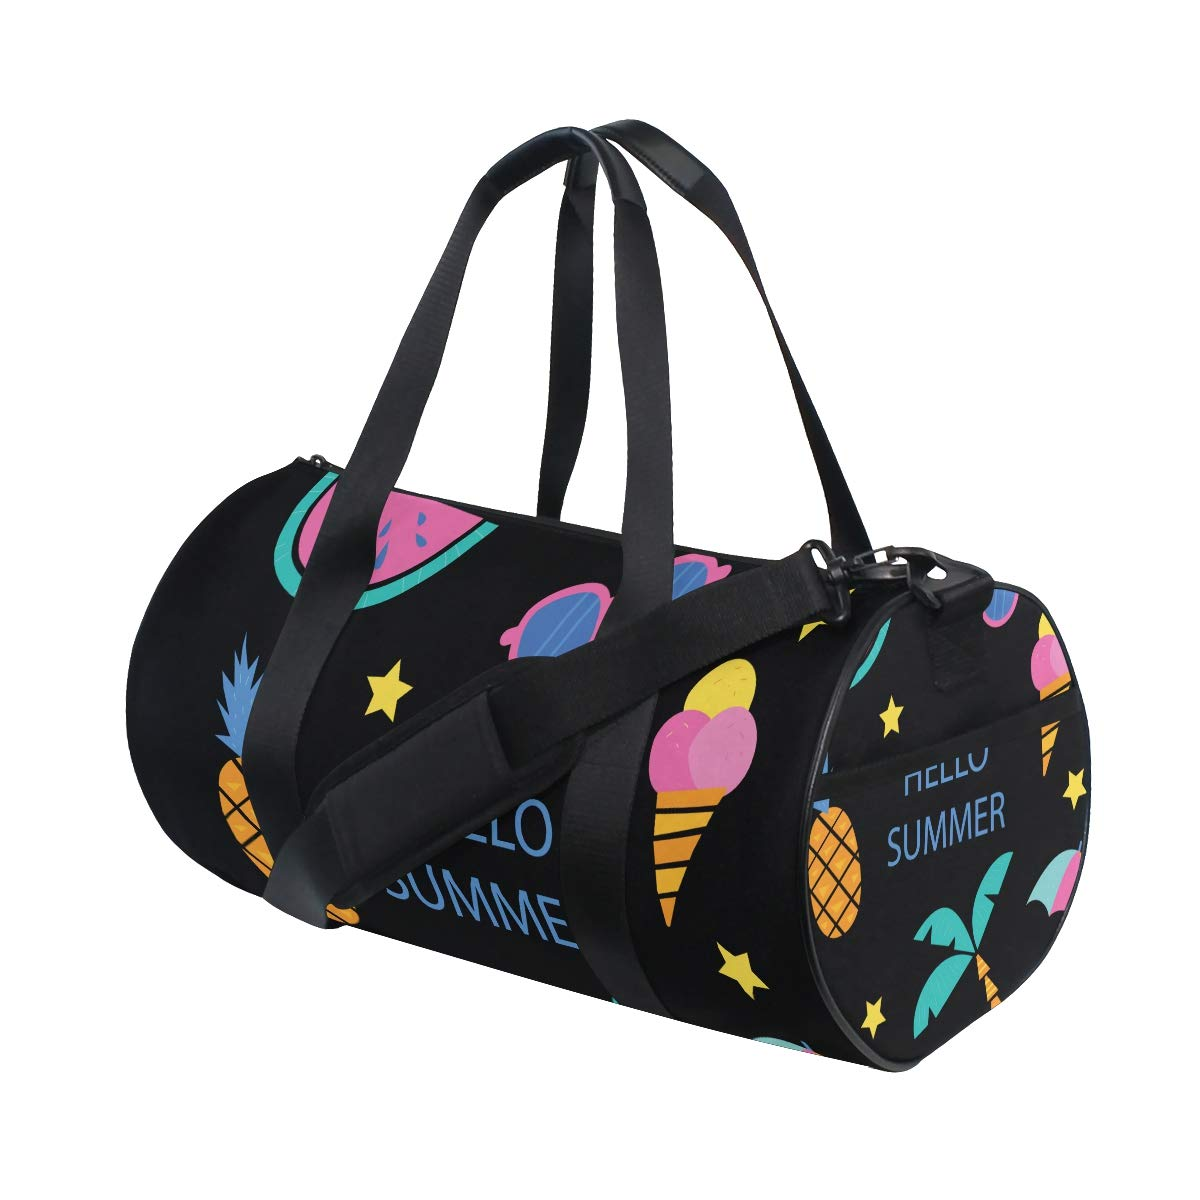 Large Duffel Bag Sports Bag Gym Bag for Women and Men - Summer Palm Pineapple